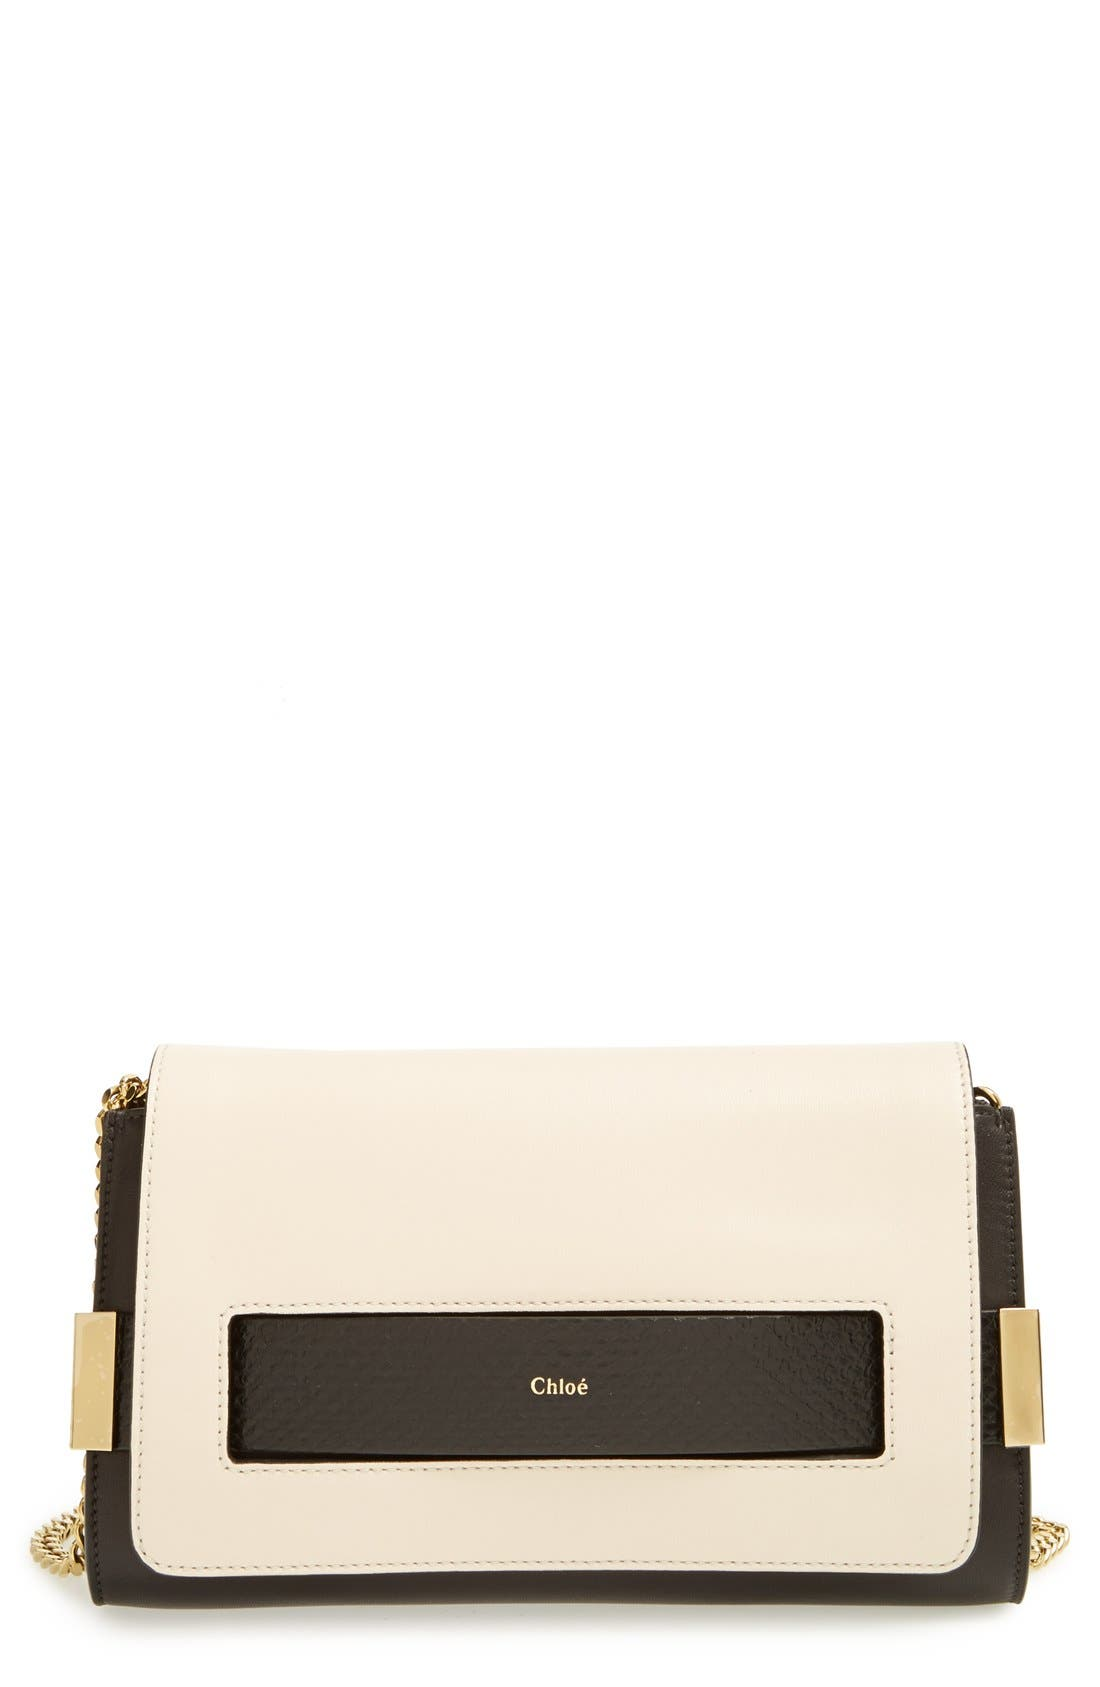 Main Image - Chloé 'Elle Ayers Medium' Clutch